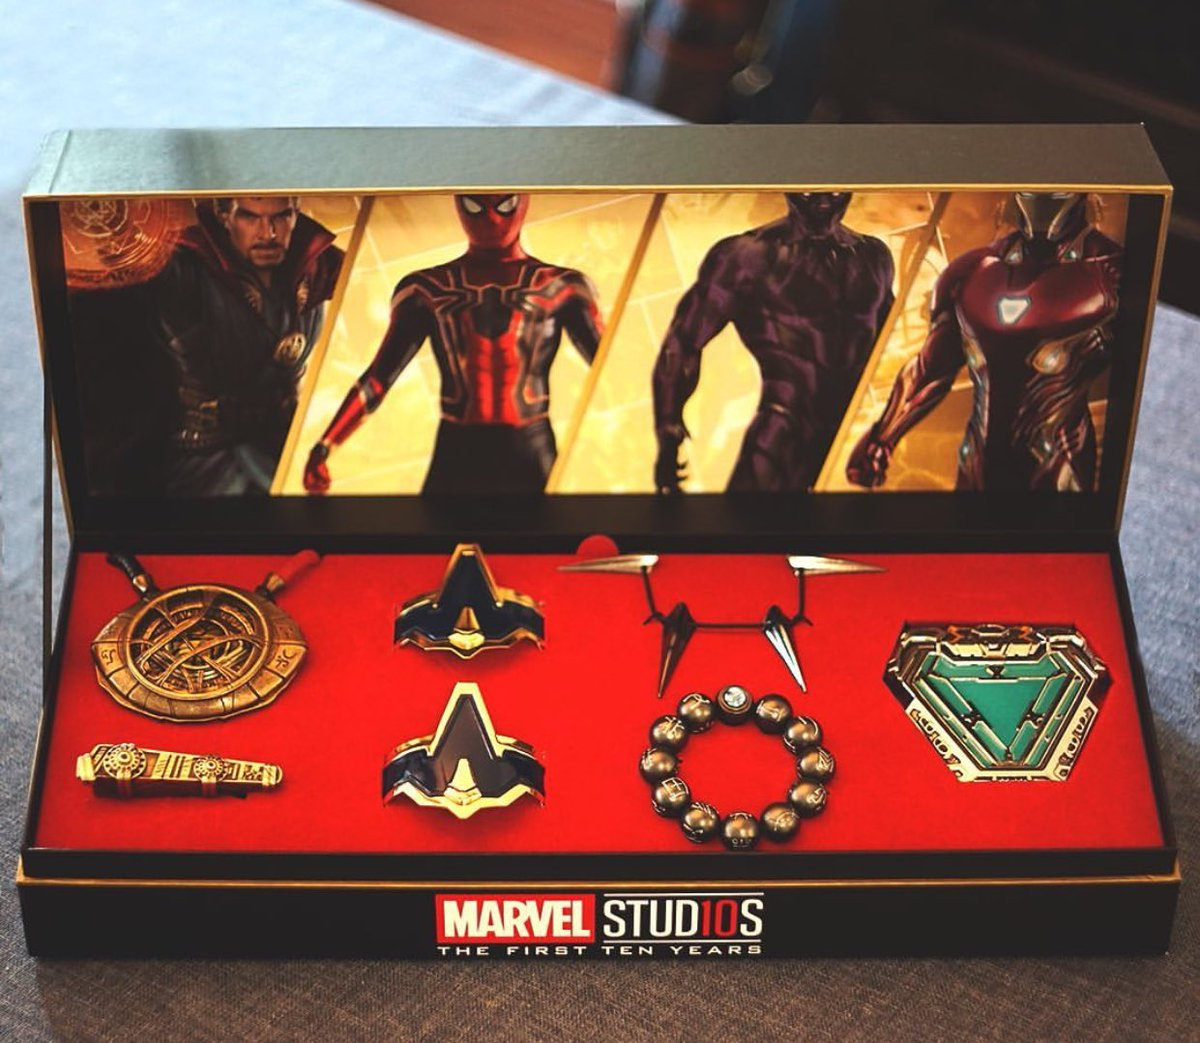 #MarvelStudios  10 year power pack comes equipped w/ #DrStrange &#39;s Eye of Agamotto Necklace and Sling Ring, Iron #SpiderMan 's Web Slingers Cuff Bracelets, #BlackPanther &#39;s Necklace and Kimoyo Bead Bracelet, and #IronMan &#39;s Arc Reactor Pin.  [@GameSpot |  https:// tinyurl.com/y59nz9bu  &nbsp;  ]<br>http://pic.twitter.com/whrWWCOe7y